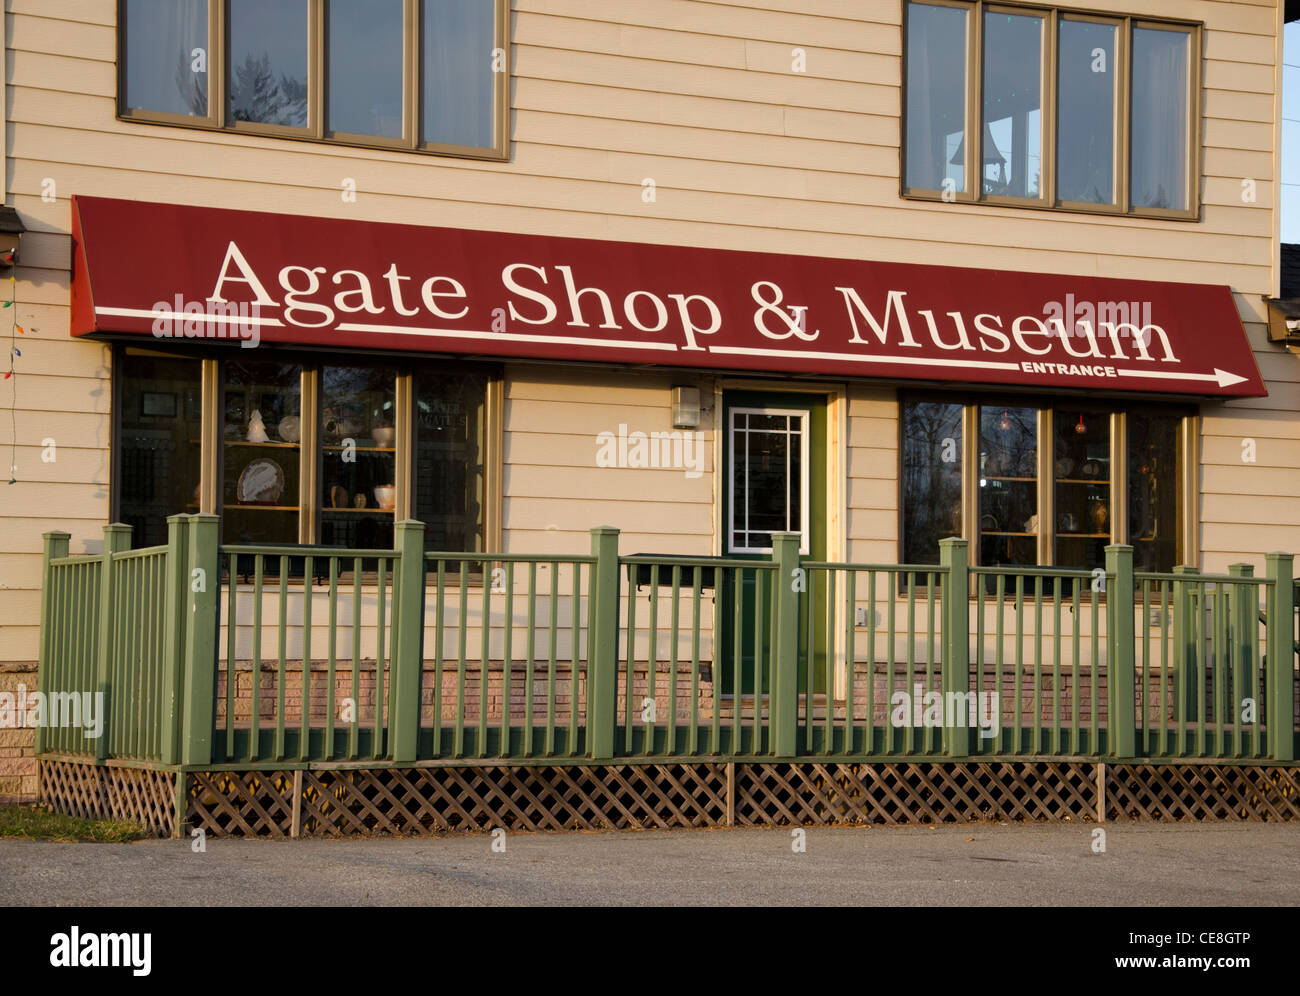 The Agate Shop and Museum in Beaver Bay, Minnesota - Stock Image